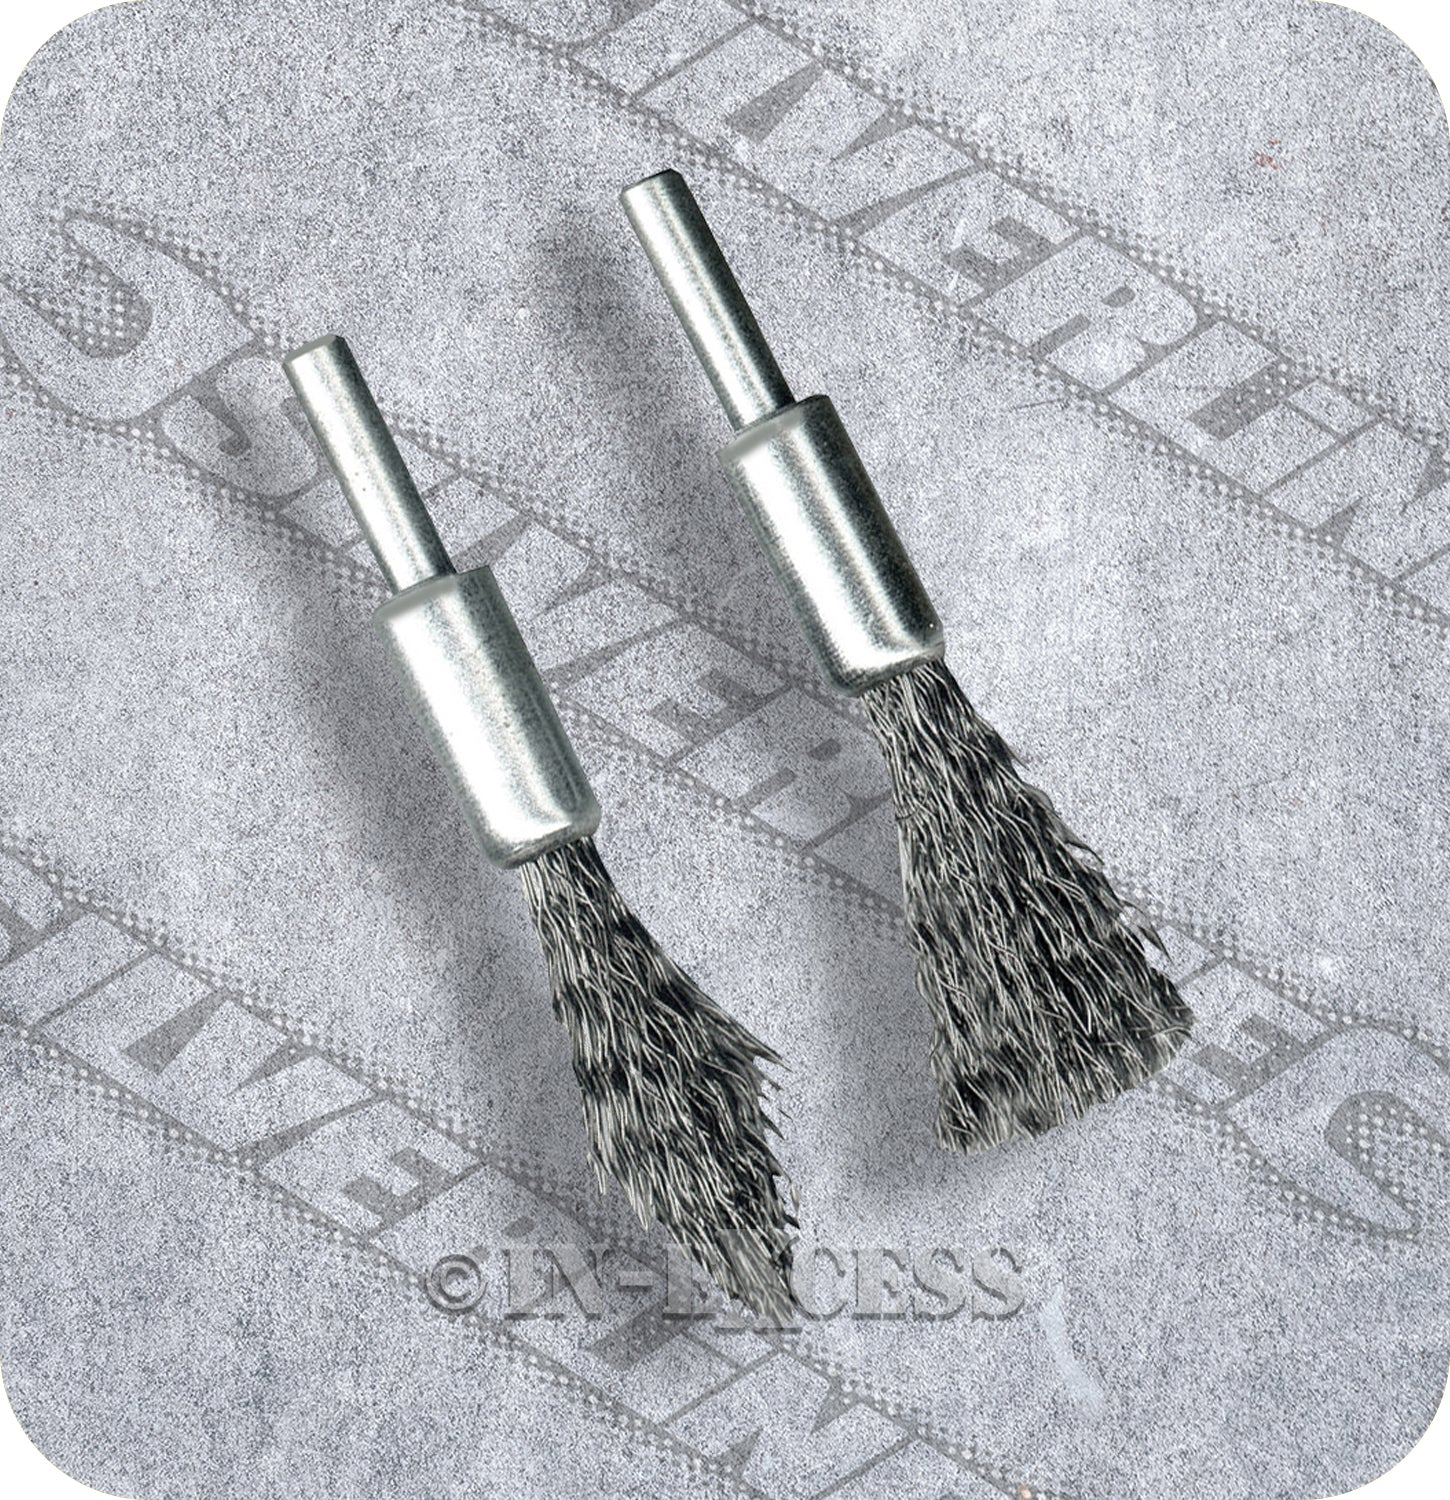 SILVERLINE 190316 DE-CARB BRUSH 6MM SHANK FOR USE WITH POWER DRILLS SET OF 2